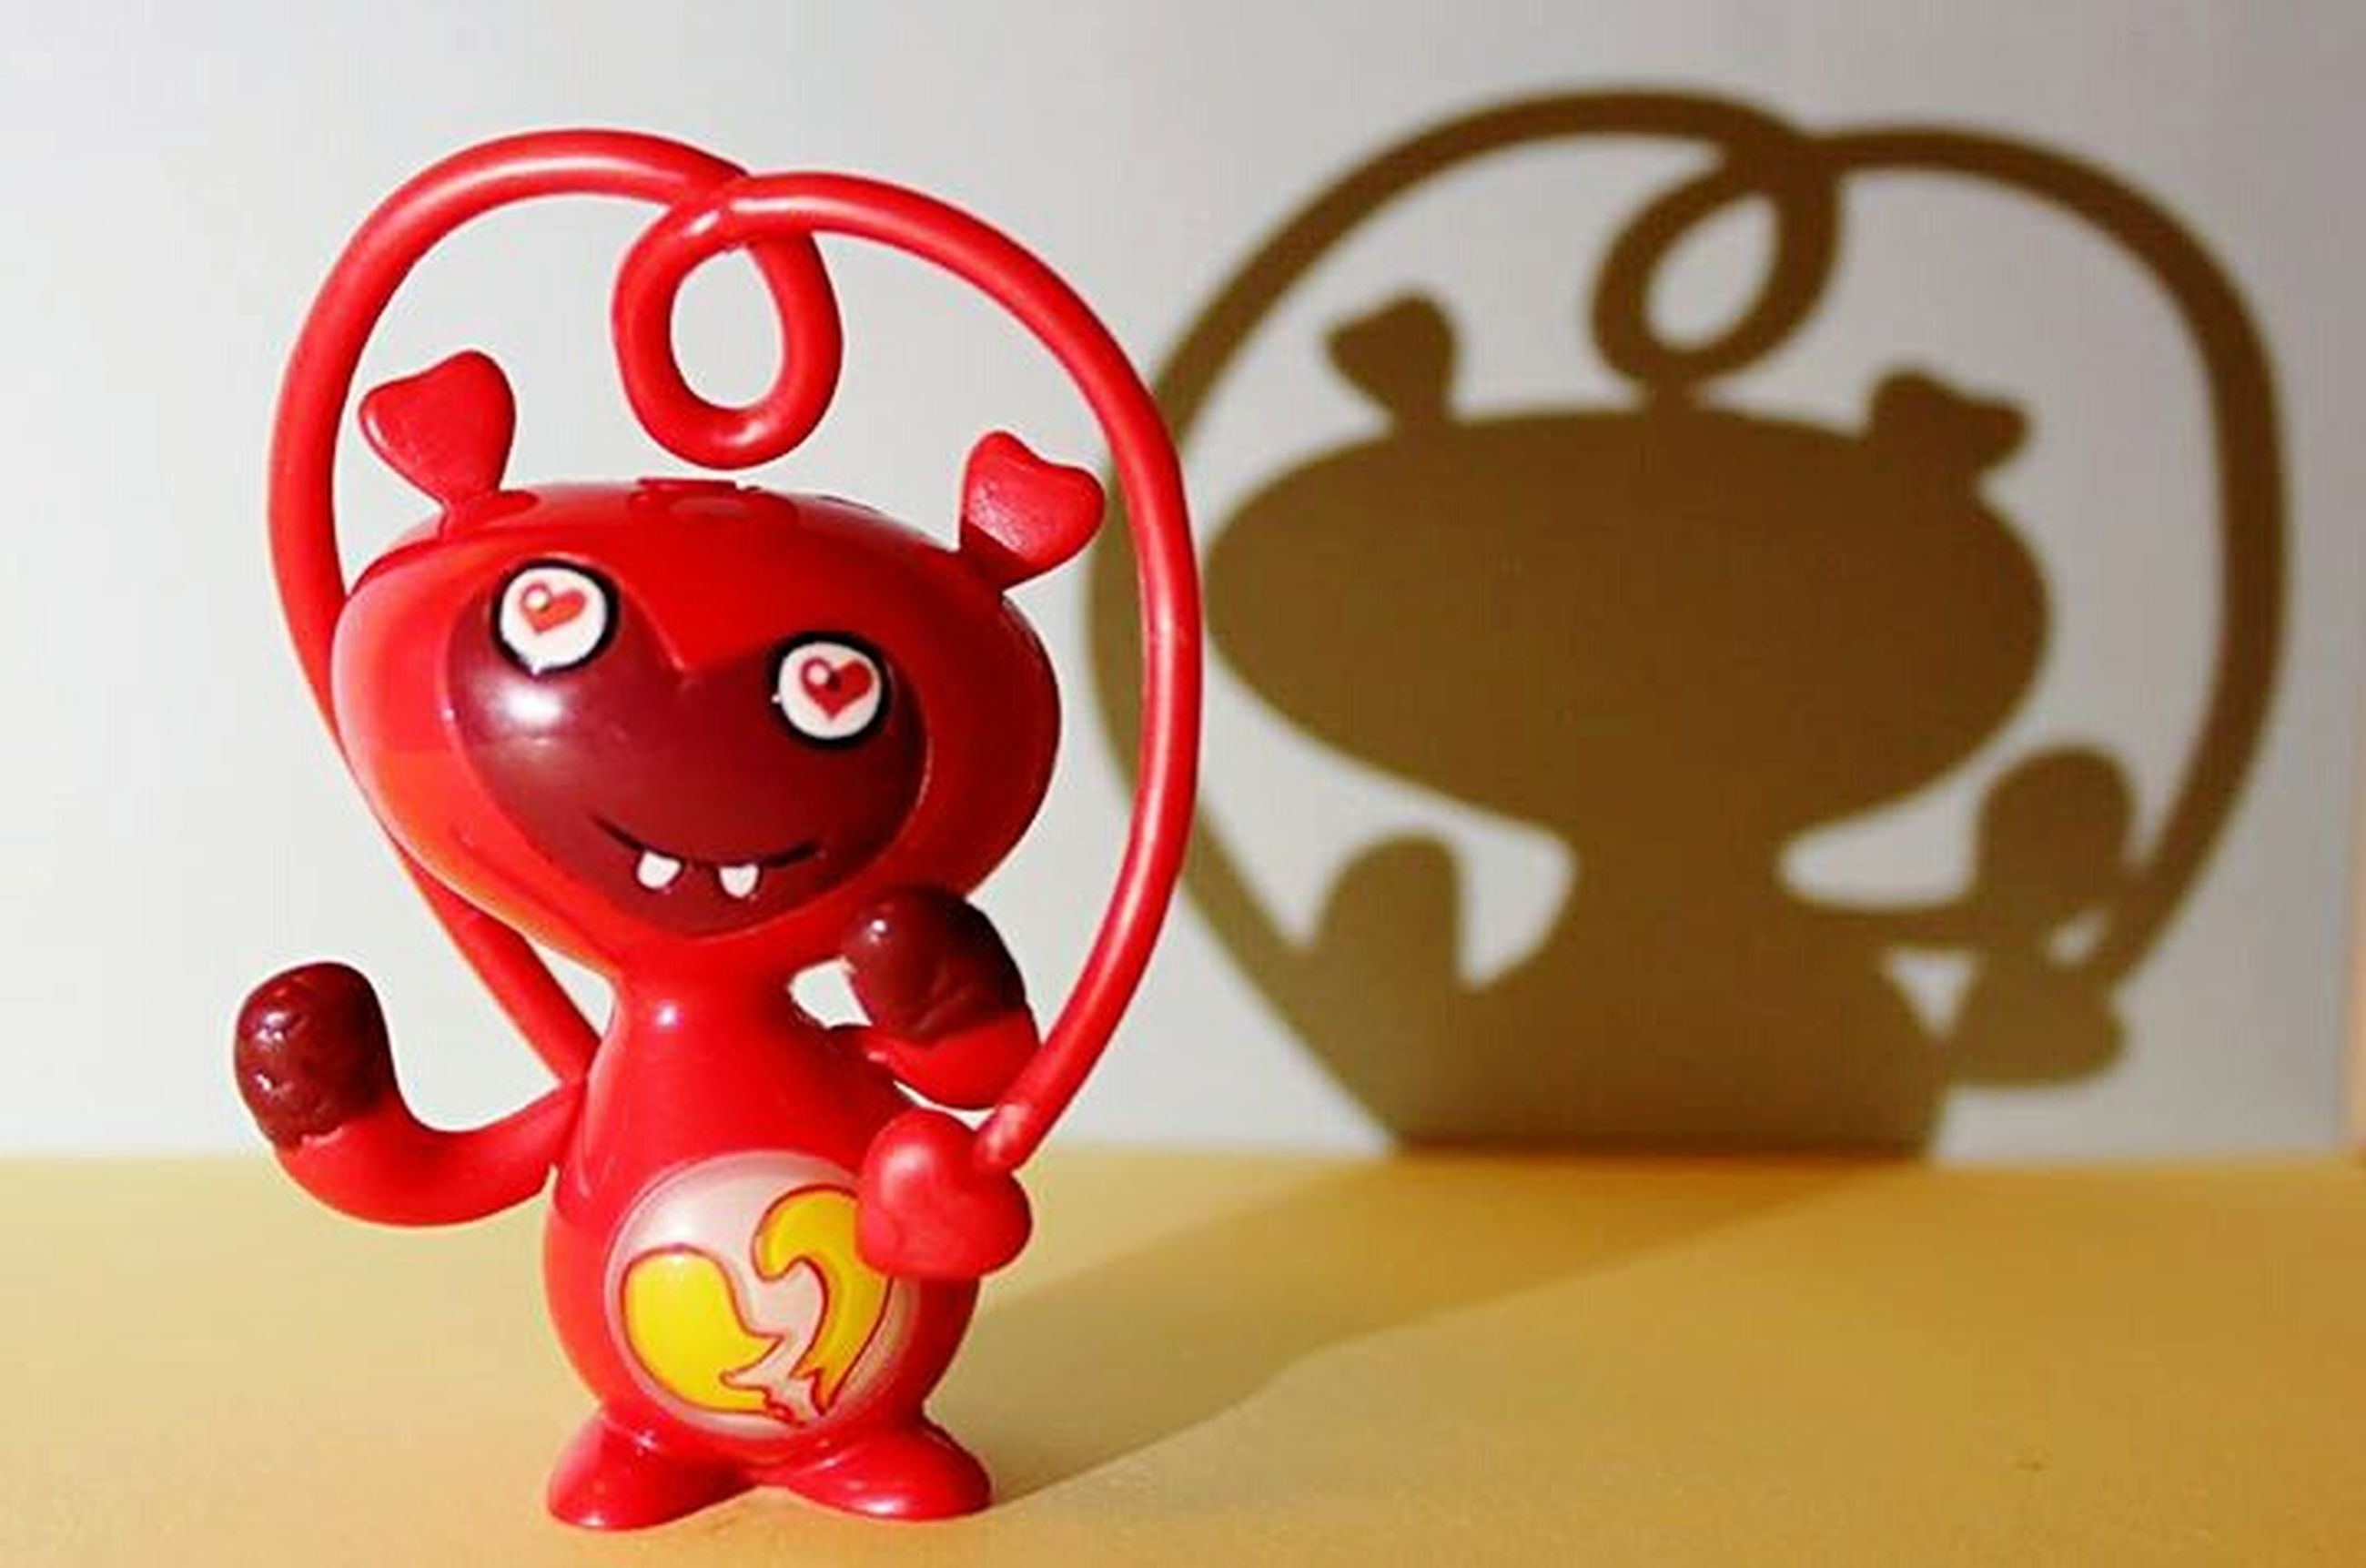 red, indoors, table, close-up, still life, toy, animal representation, creativity, art, childhood, art and craft, wall - building feature, no people, text, human representation, focus on foreground, communication, single object, circle, anthropomorphic face